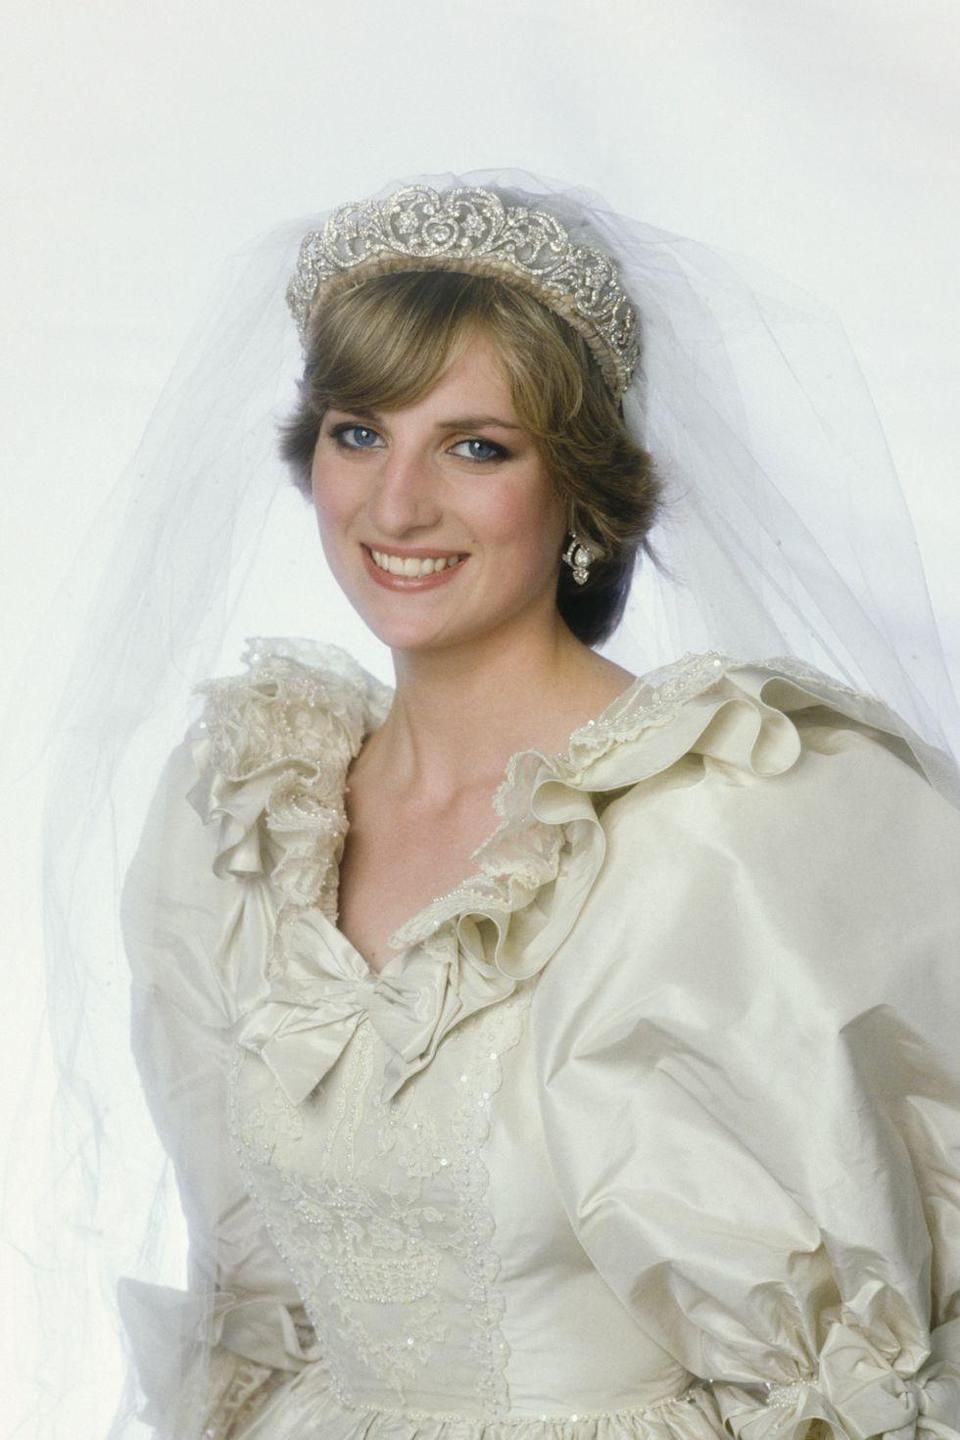 "<p><strong>Wedding date: </strong>July 29, 1981</p><p><strong>Wedding tiara: </strong><a href=""https://www.townandcountrymag.com/society/tradition/g10239753/princess-diana-life-in-pictures/"" rel=""nofollow noopener"" target=""_blank"" data-ylk=""slk:Princess Diana wore"" class=""link rapid-noclick-resp"">Princess Diana wore</a> her family tiara, the Spencer tiara, <a href=""https://www.townandcountrymag.com/the-scene/weddings/a18205641/princess-diana-prince-charles-wedding/"" rel=""nofollow noopener"" target=""_blank"" data-ylk=""slk:when she married Prince Charles"" class=""link rapid-noclick-resp"">when she married Prince Charles</a>. A combination of many pieces of jewelry, the center of the tiara was a gift from Lady Sarah Spencer to Cynthia Spencer, Countess Spencer on her wedding day in 1919. It was remounted with new elements made by Garrard in 1937. <a href=""https://www.townandcountrymag.com/society/tradition/a12138504/princess-diana-sisters-lady-sarah-mccorquodale-jane-fellowes/"" rel=""nofollow noopener"" target=""_blank"" data-ylk=""slk:Diana's sisters, Lady Sarah and Jane,"" class=""link rapid-noclick-resp"">Diana's sisters, Lady Sarah and Jane,</a> also wore the tiara on their wedding days, as did Victoria Lockwood, who married Diana's brother Charles in 1989, <a href=""http://people.com/royals/princess-dianas-spencer-tiara-history-and-photos/"" rel=""nofollow noopener"" target=""_blank"" data-ylk=""slk:People reports."" class=""link rapid-noclick-resp""><em>People</em> reports.</a><br></p>"